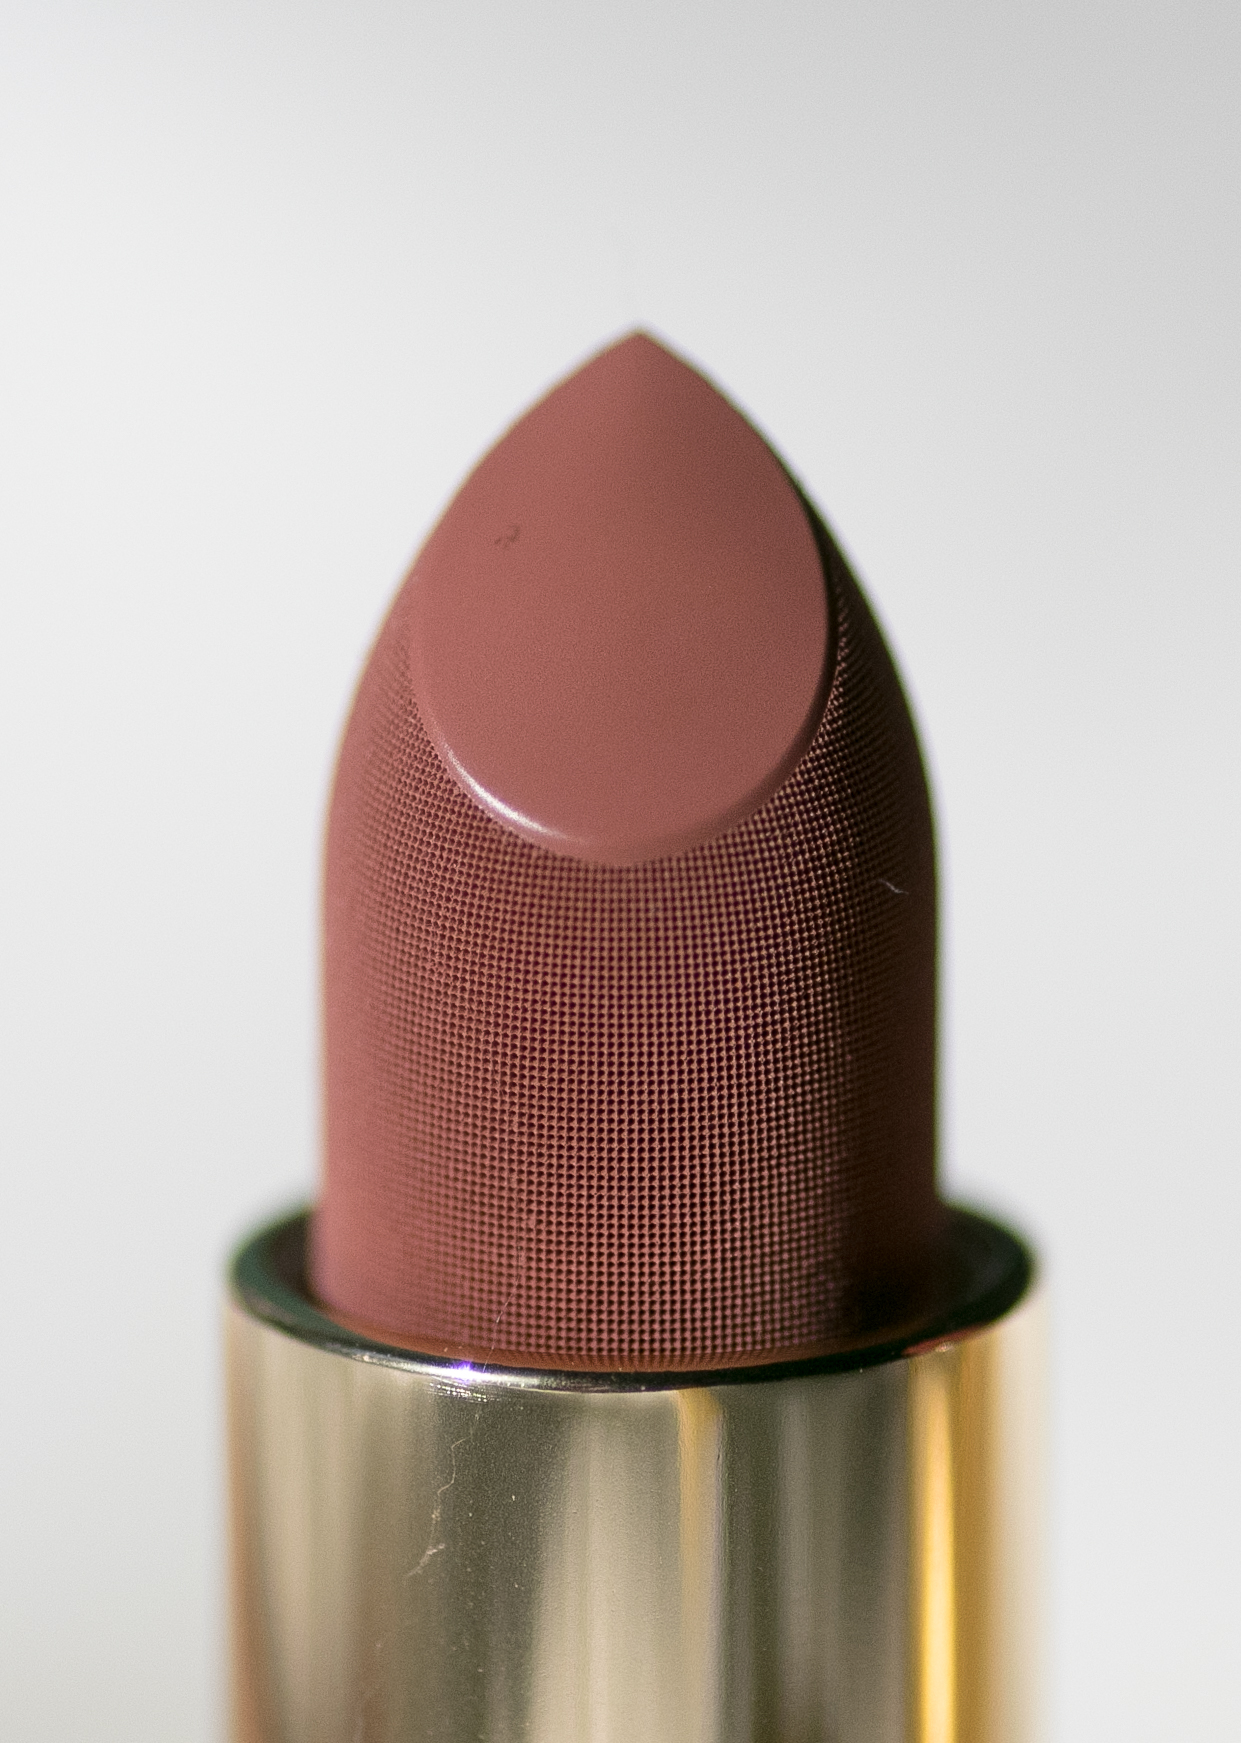 Lisa Eldridge True Velvet Lip Colour in Velvet Fawn